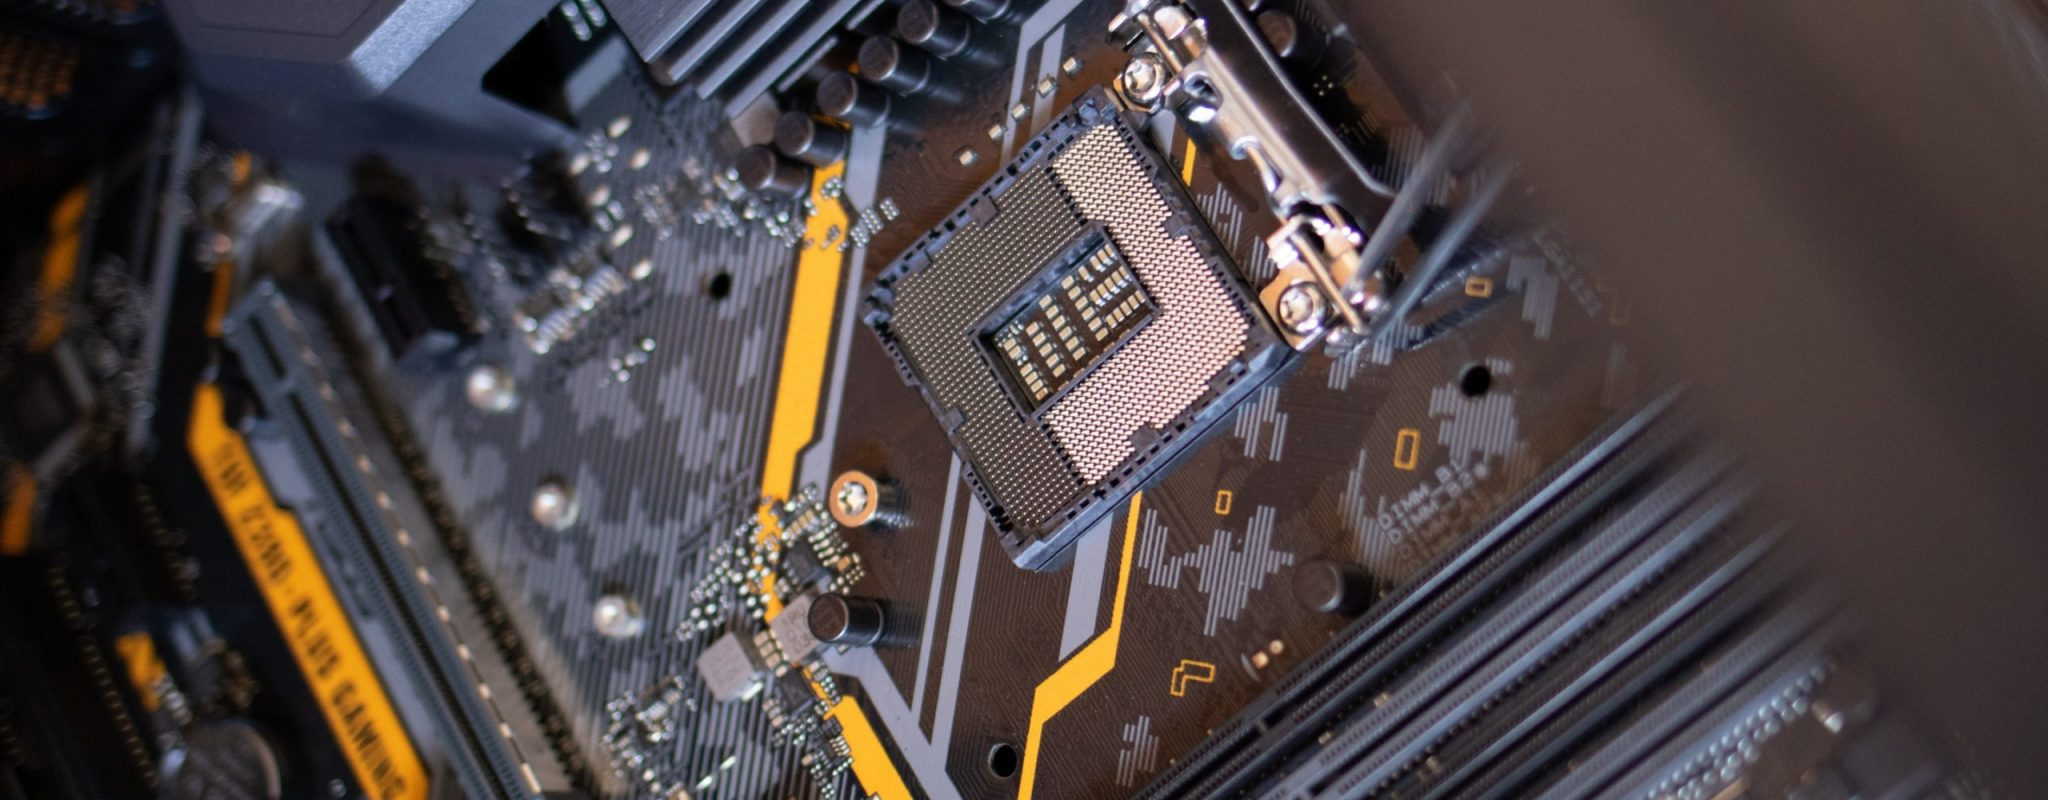 black-and-gray-motherboard-2582937